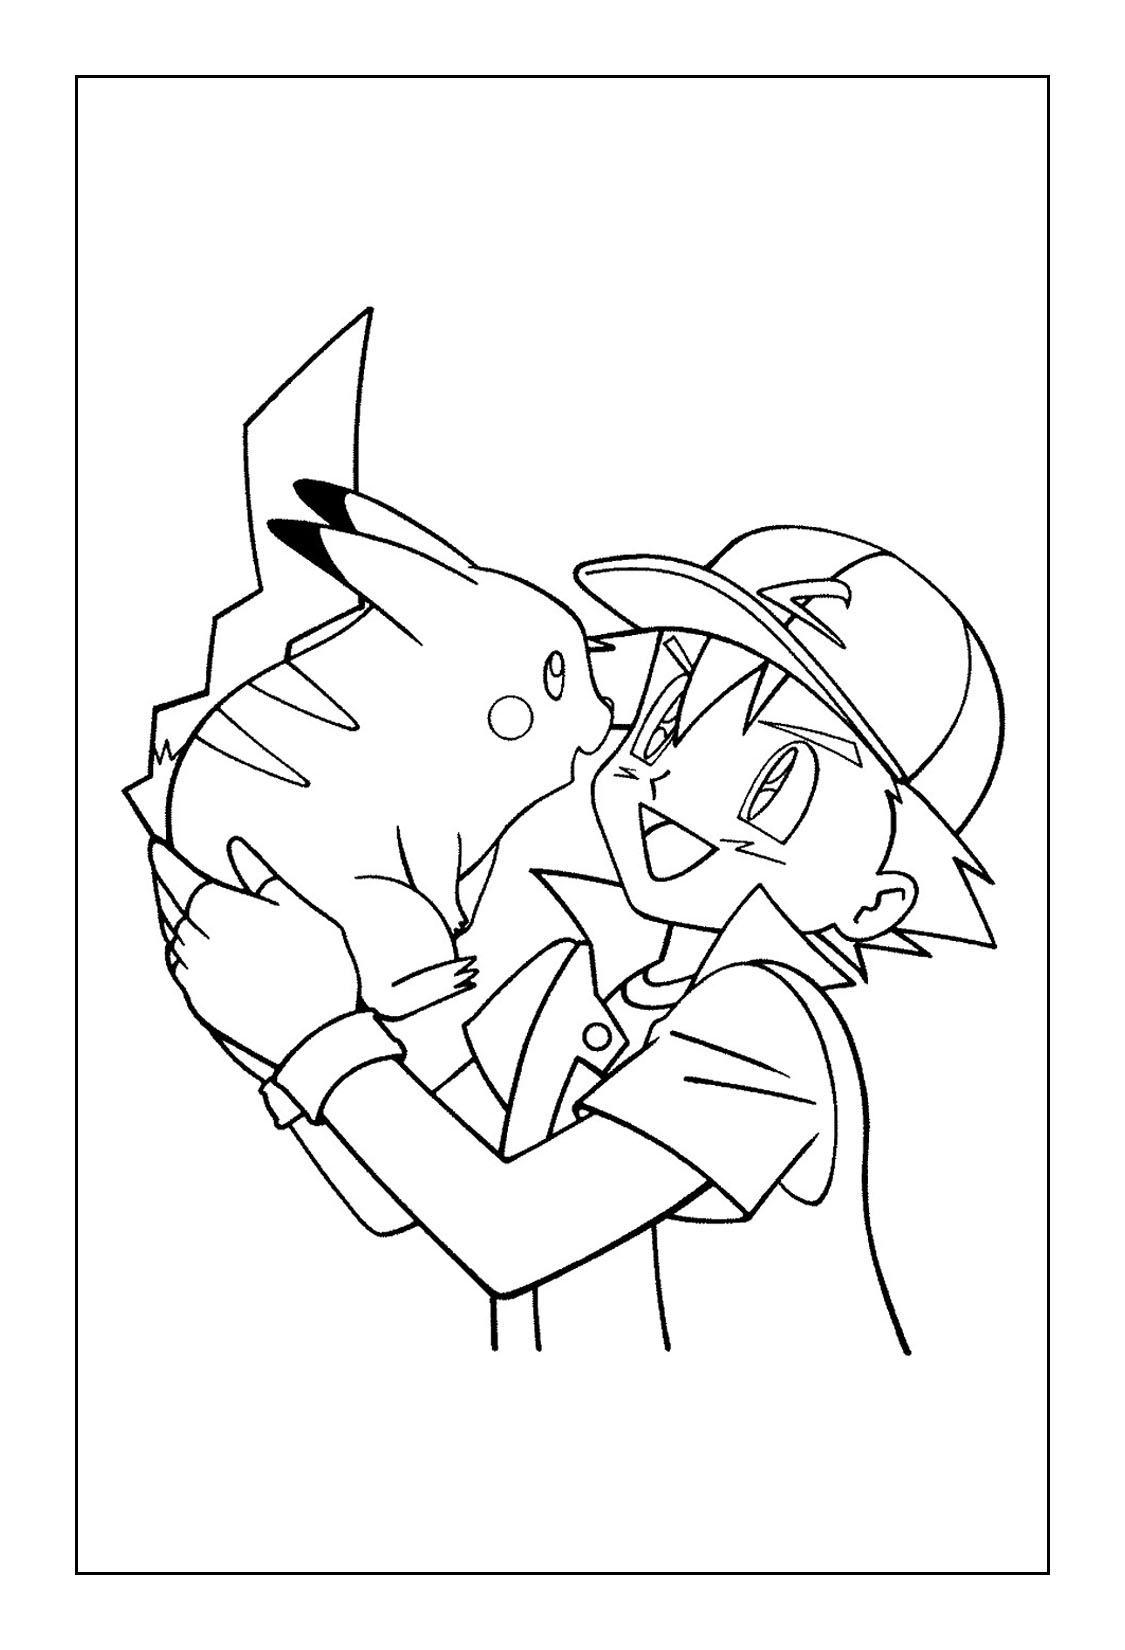 Gambar Pikachu Coloring Pages Coloring Rocks Jpeg Png Gif - Best ...